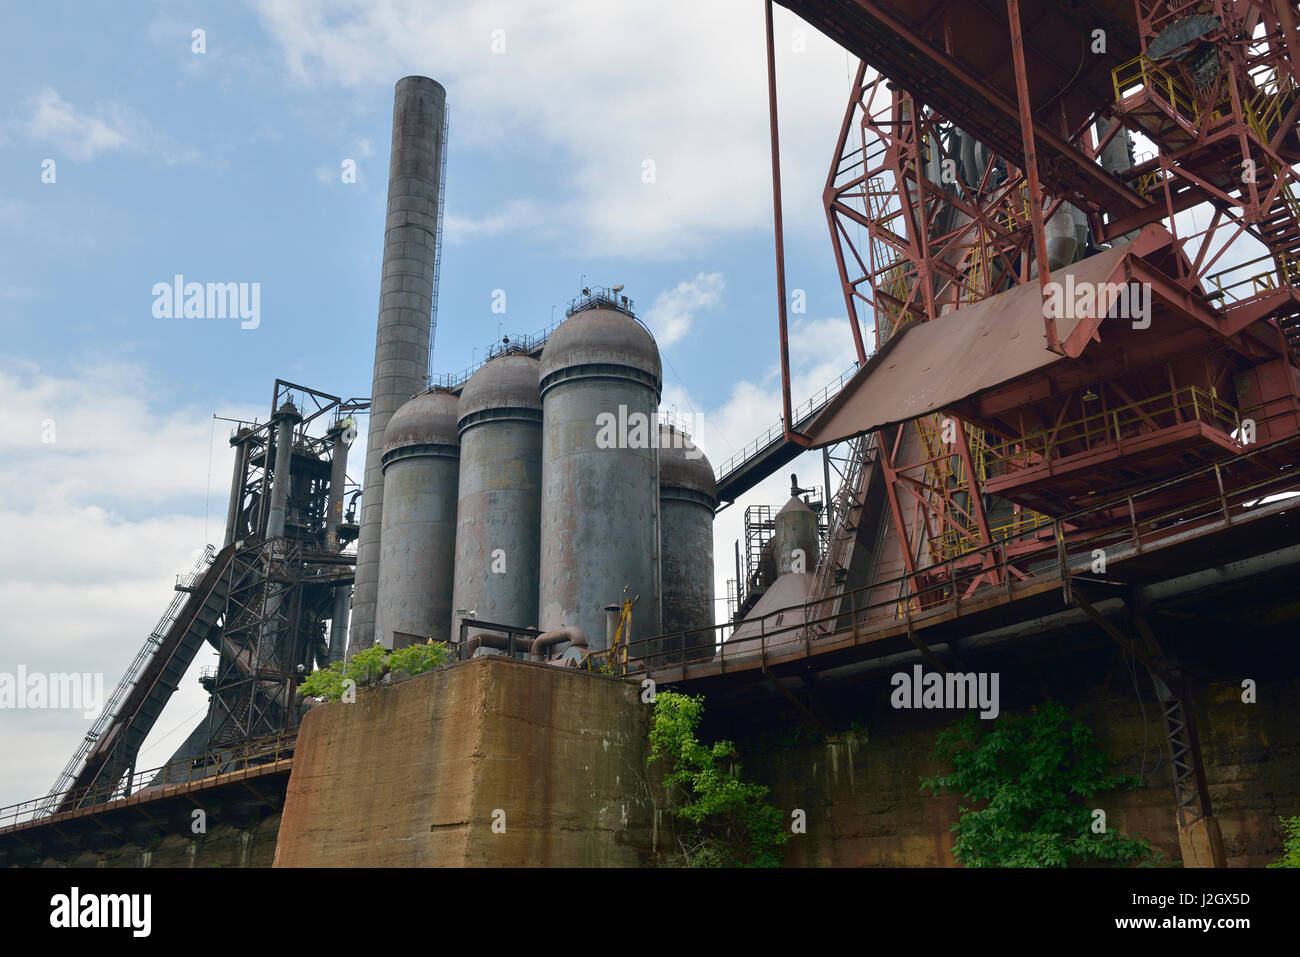 USA, Pennsylvania, Rankin. Hot blast stoves at the Carrie Furnaces (Editorial Use Only) (Large format sizes available) - Stock Image